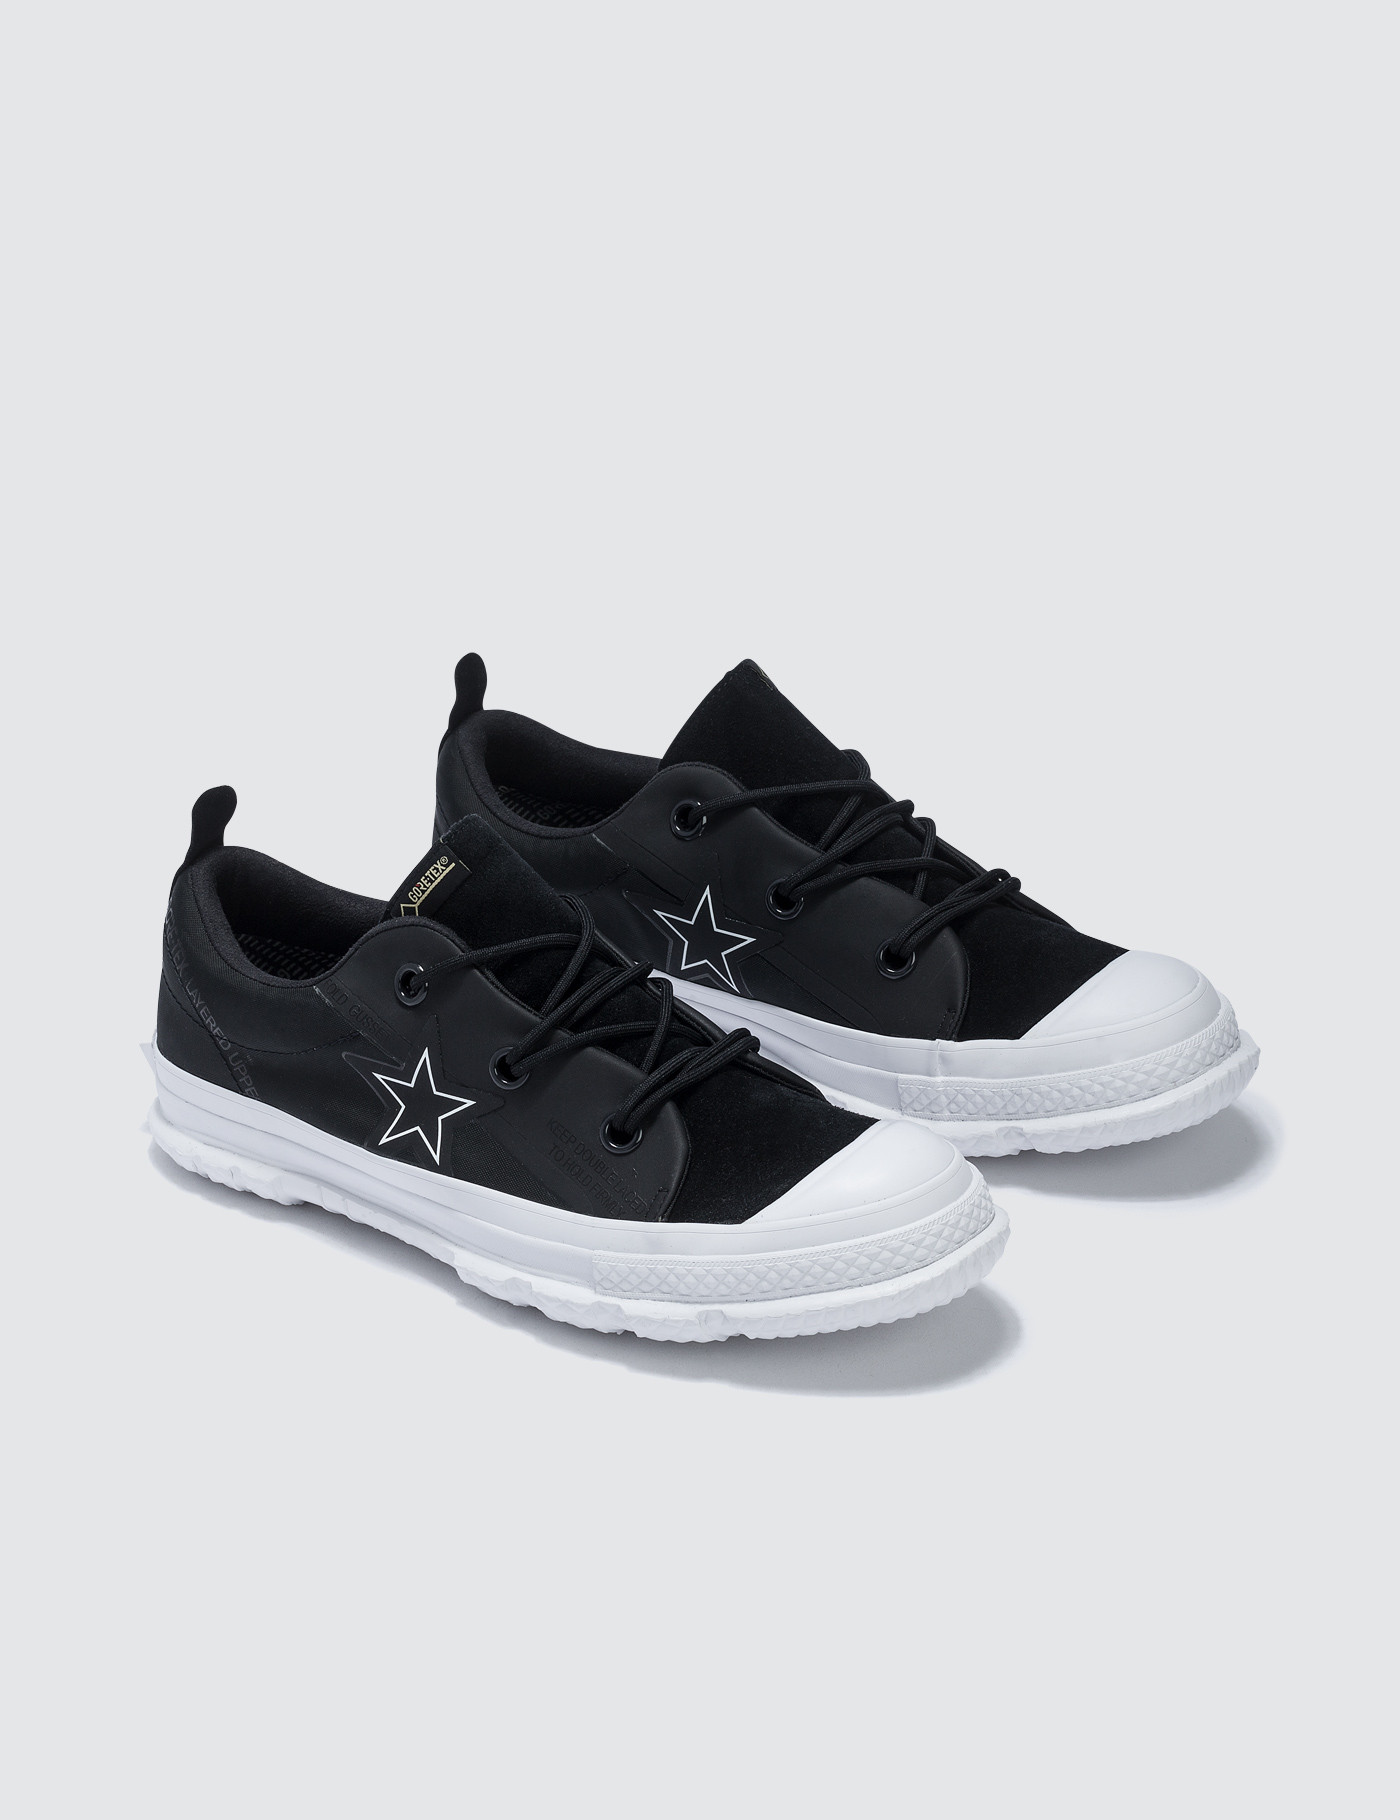 Converse One Star MC18 OX